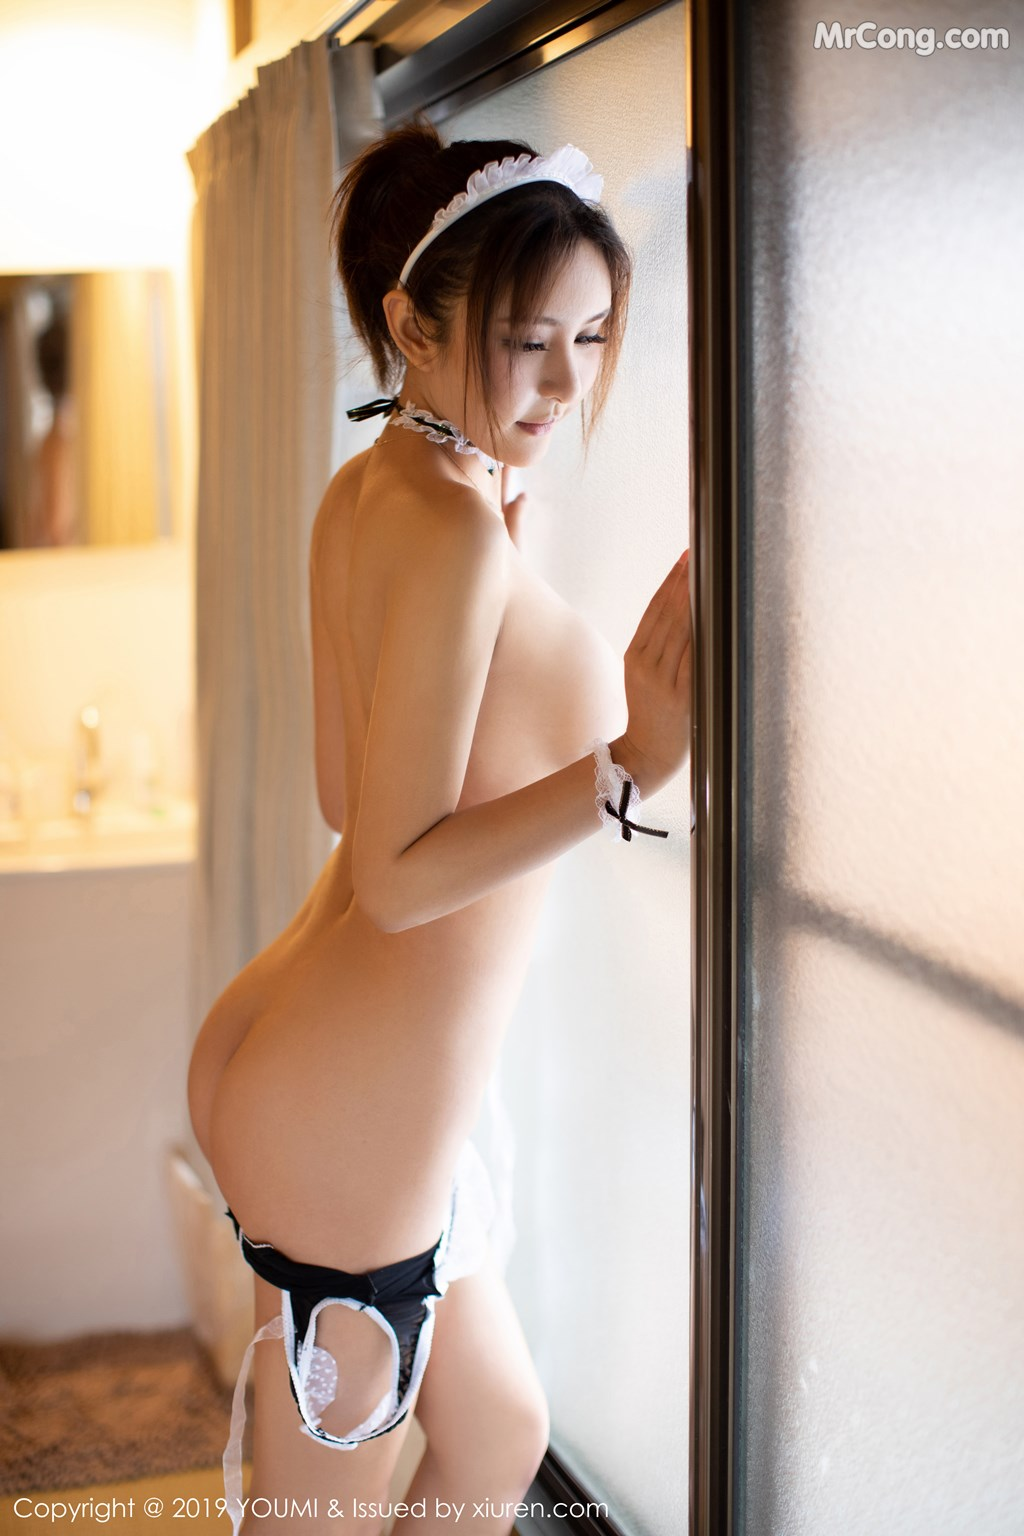 Image YouMi-Vol.299-SOLO-MrCong.com-013 in post YouMi Vol.299: SOLO-尹菲 (41 ảnh)